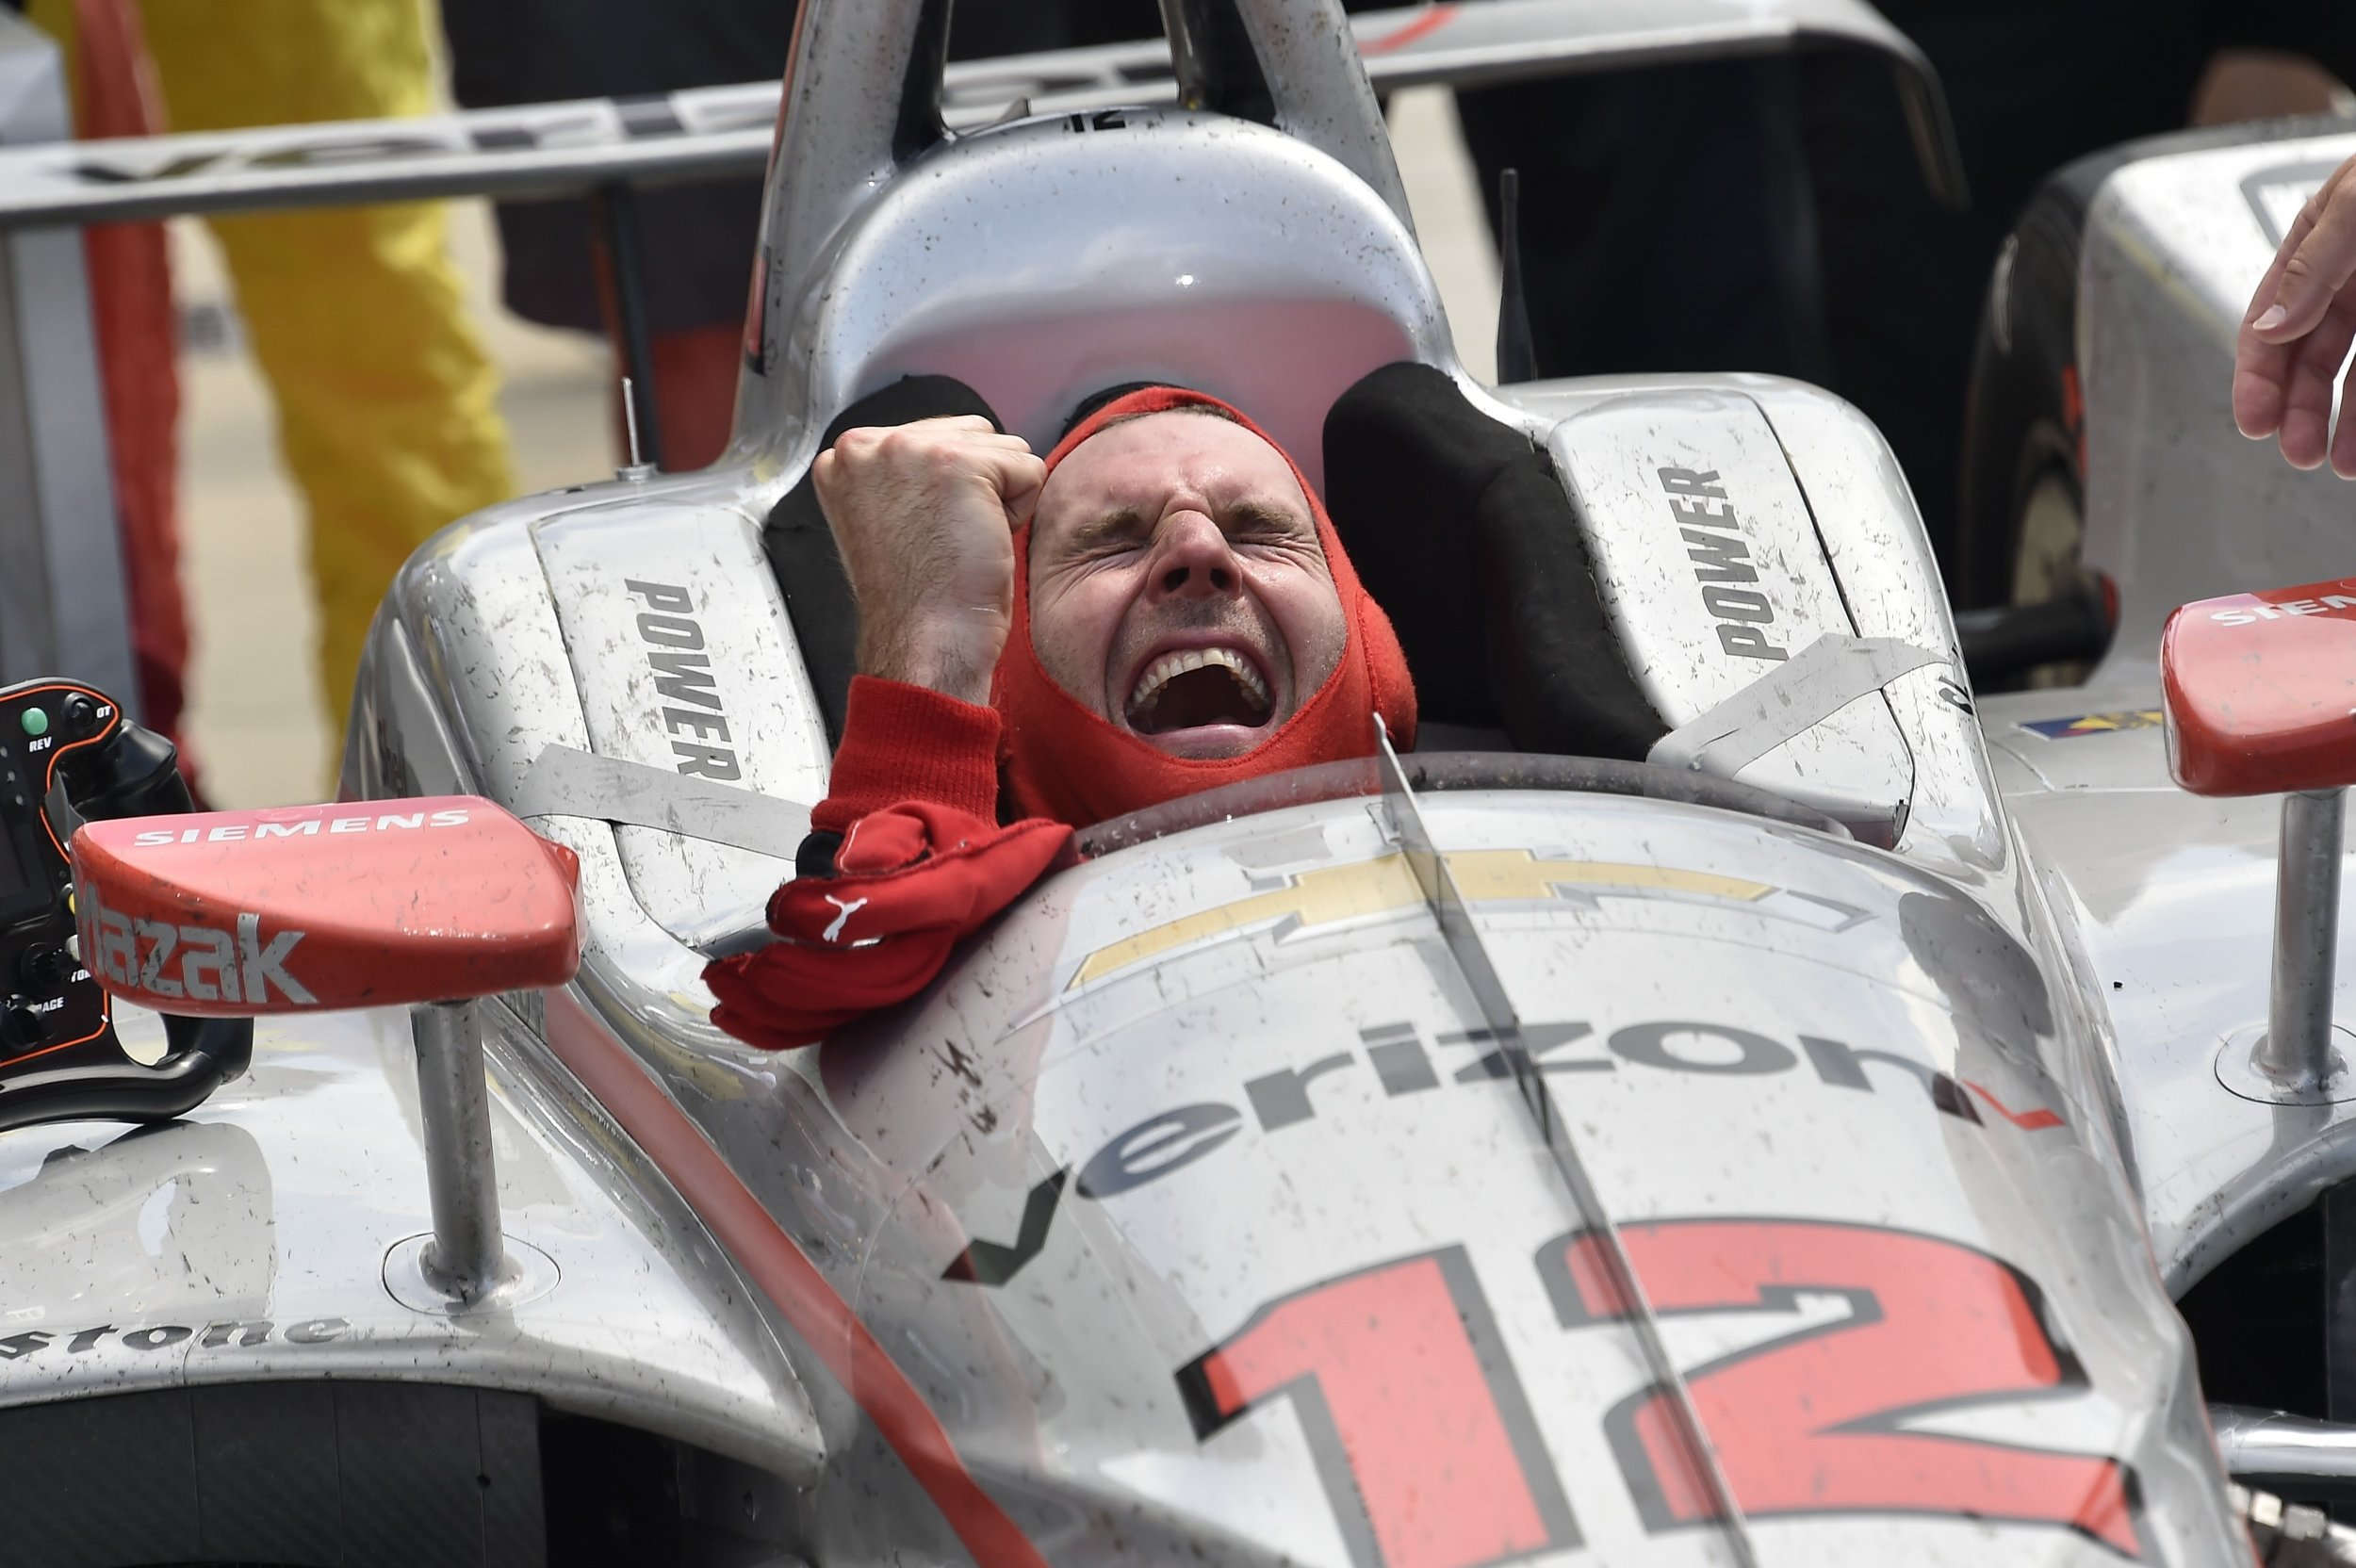 It's been great to see Will improve his oval craft the last few seasons. Will is one of the legends of our sport, racing history could never forget Will Power. After winning the 500 and creating moments like this, how could it?